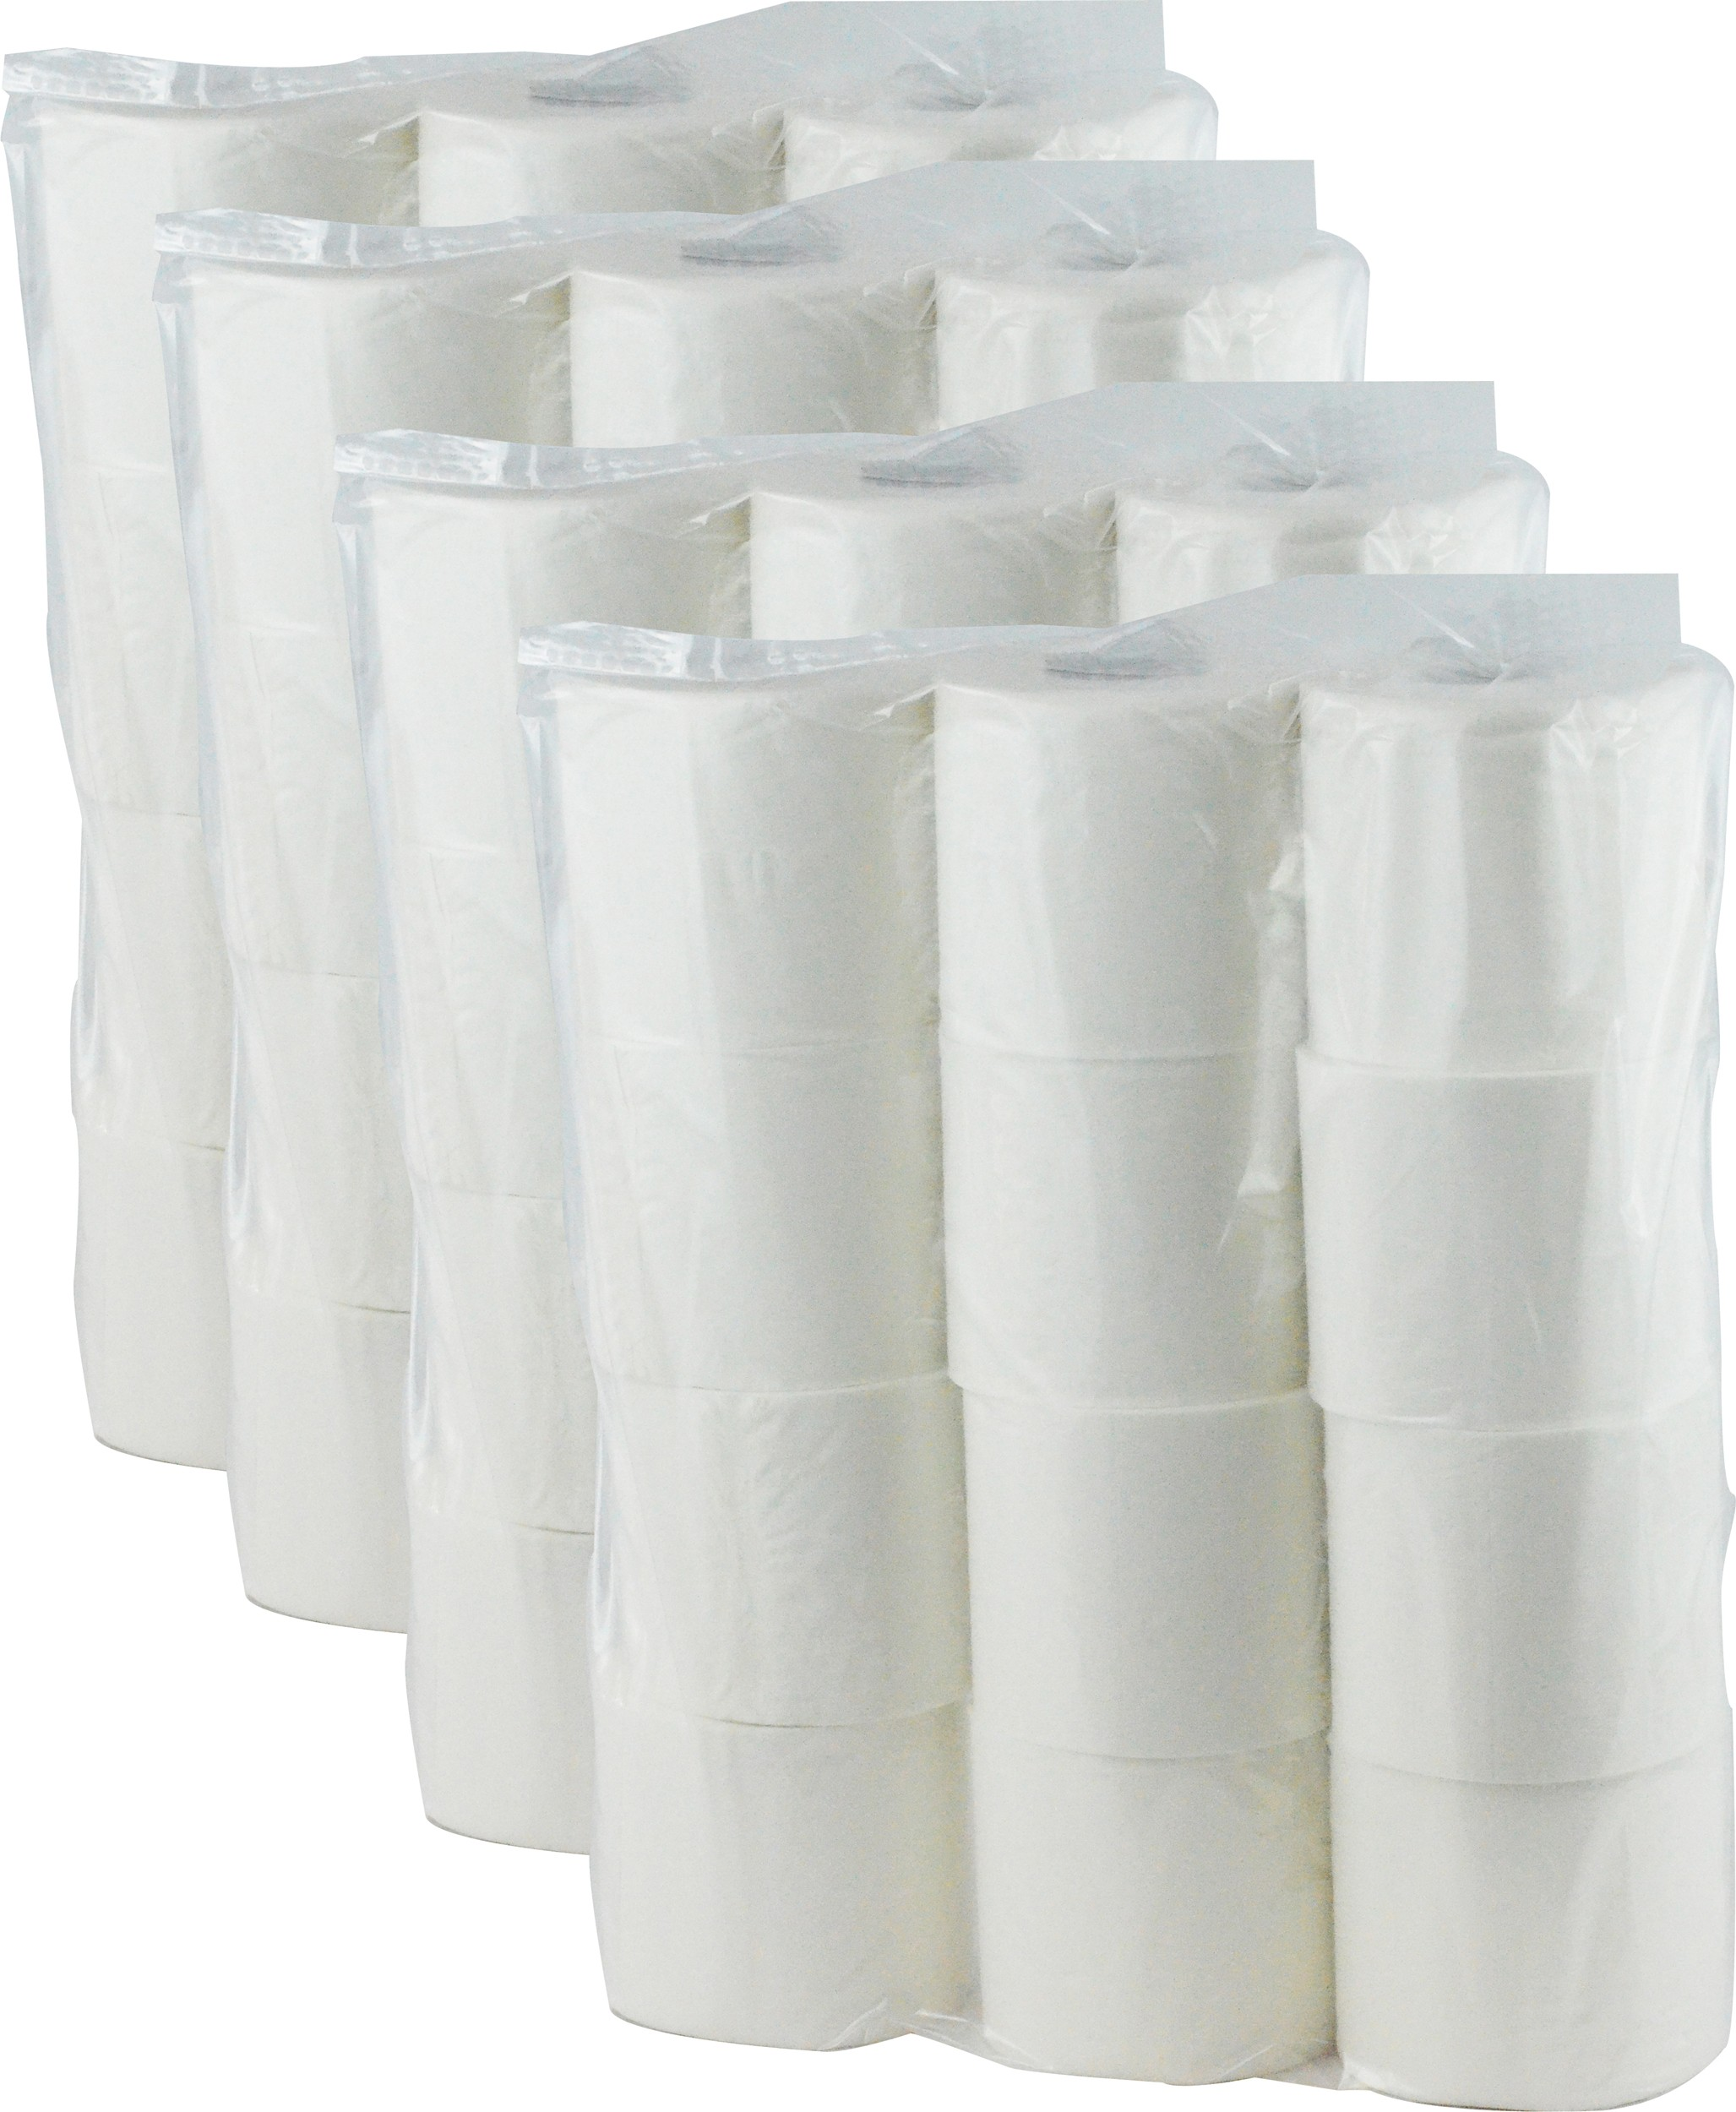 white 2-ply 450-sheets per roll bathroom tissue, professional bulk